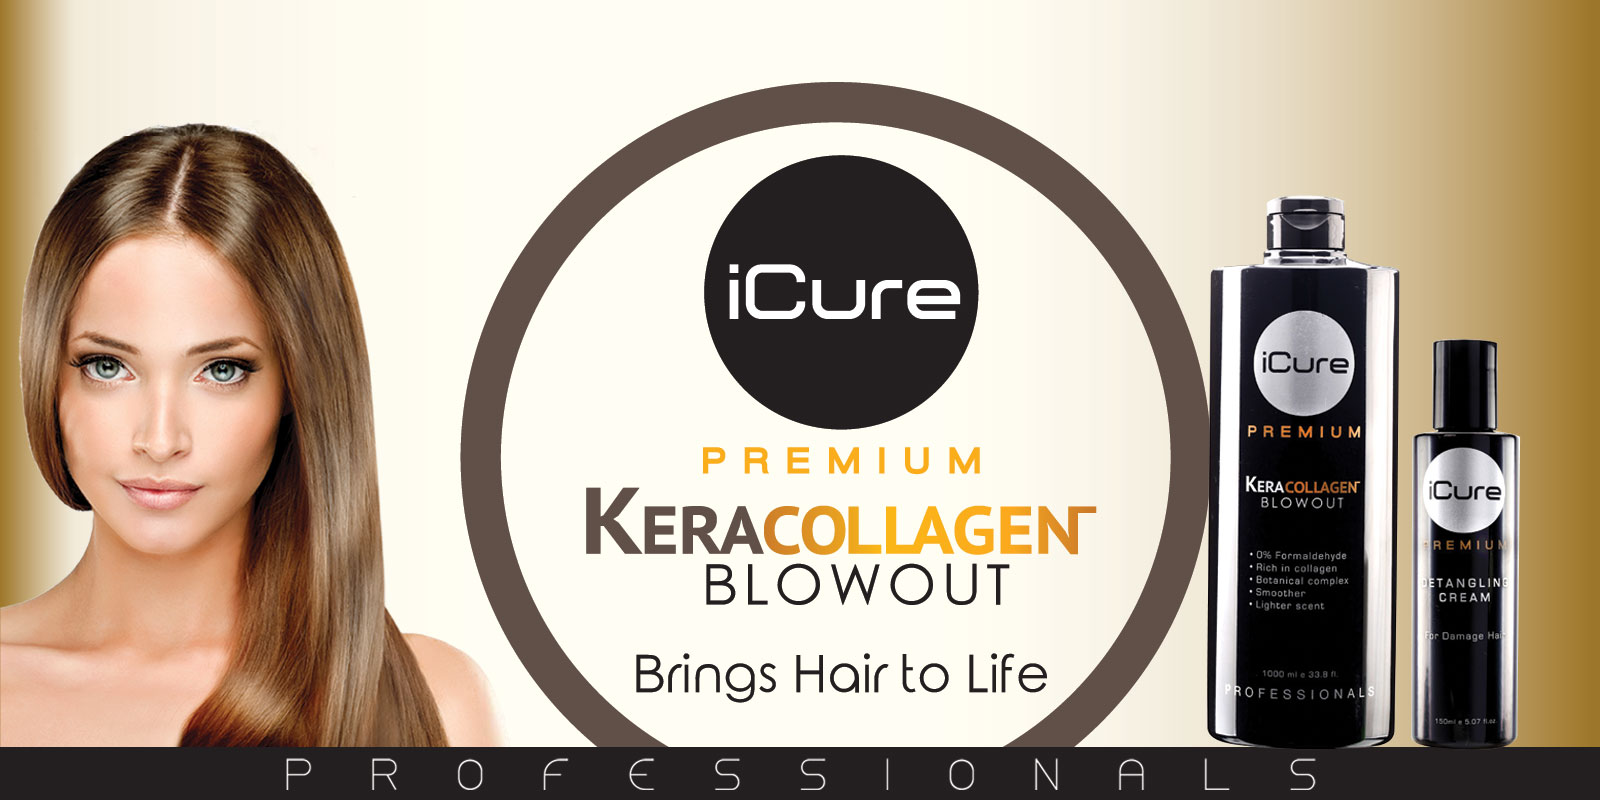 iCure Premium Kera Collagen Blowout